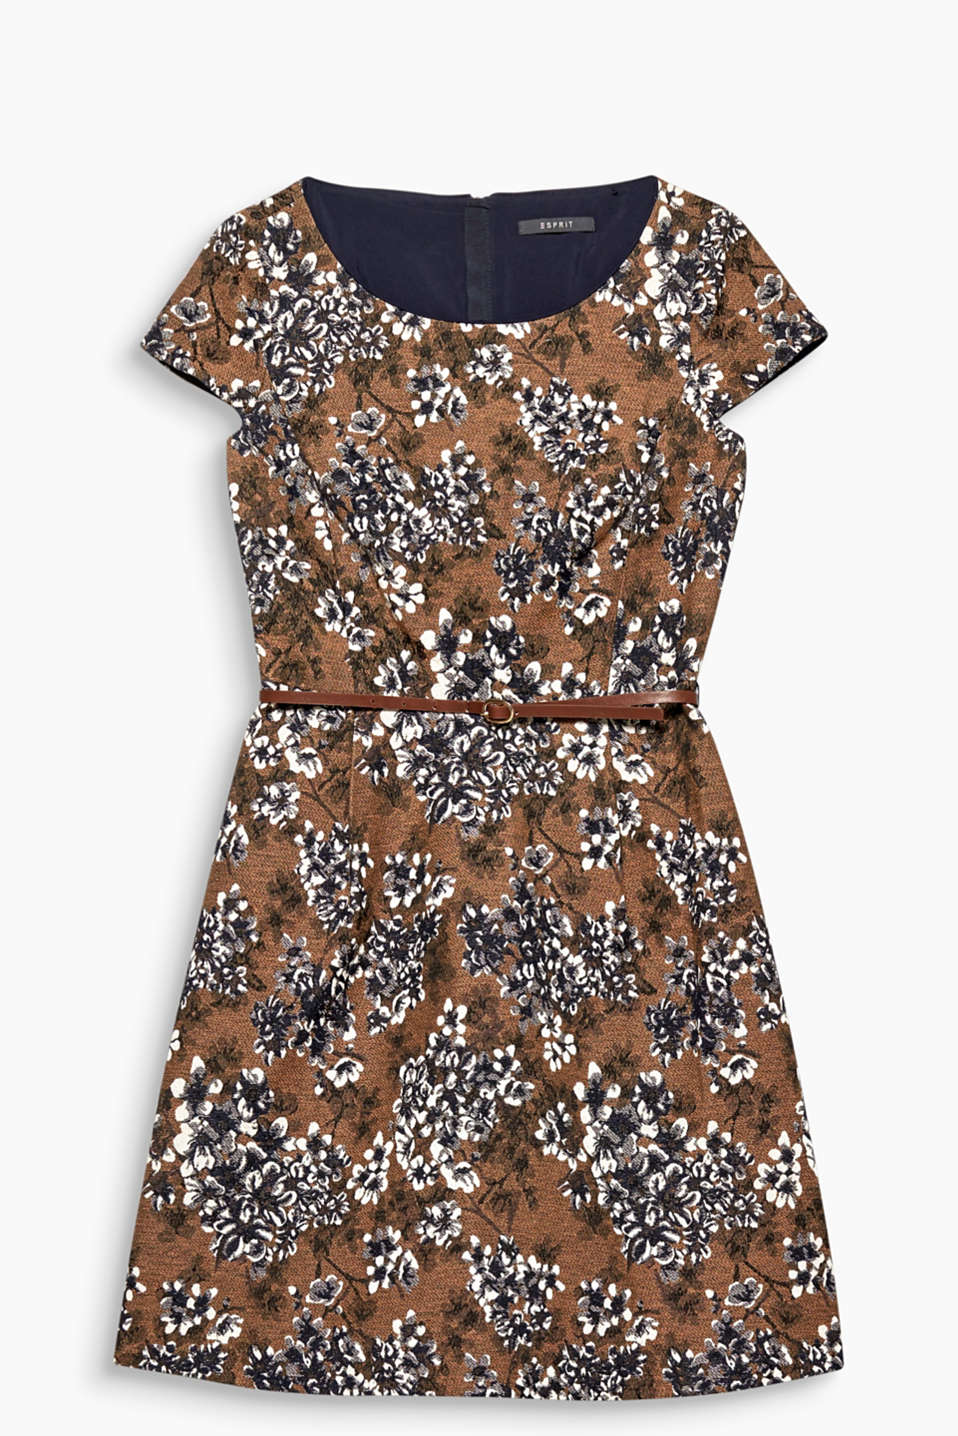 Autumn flowers on a robust fabric make this dress and feminine outfit for cooler days!